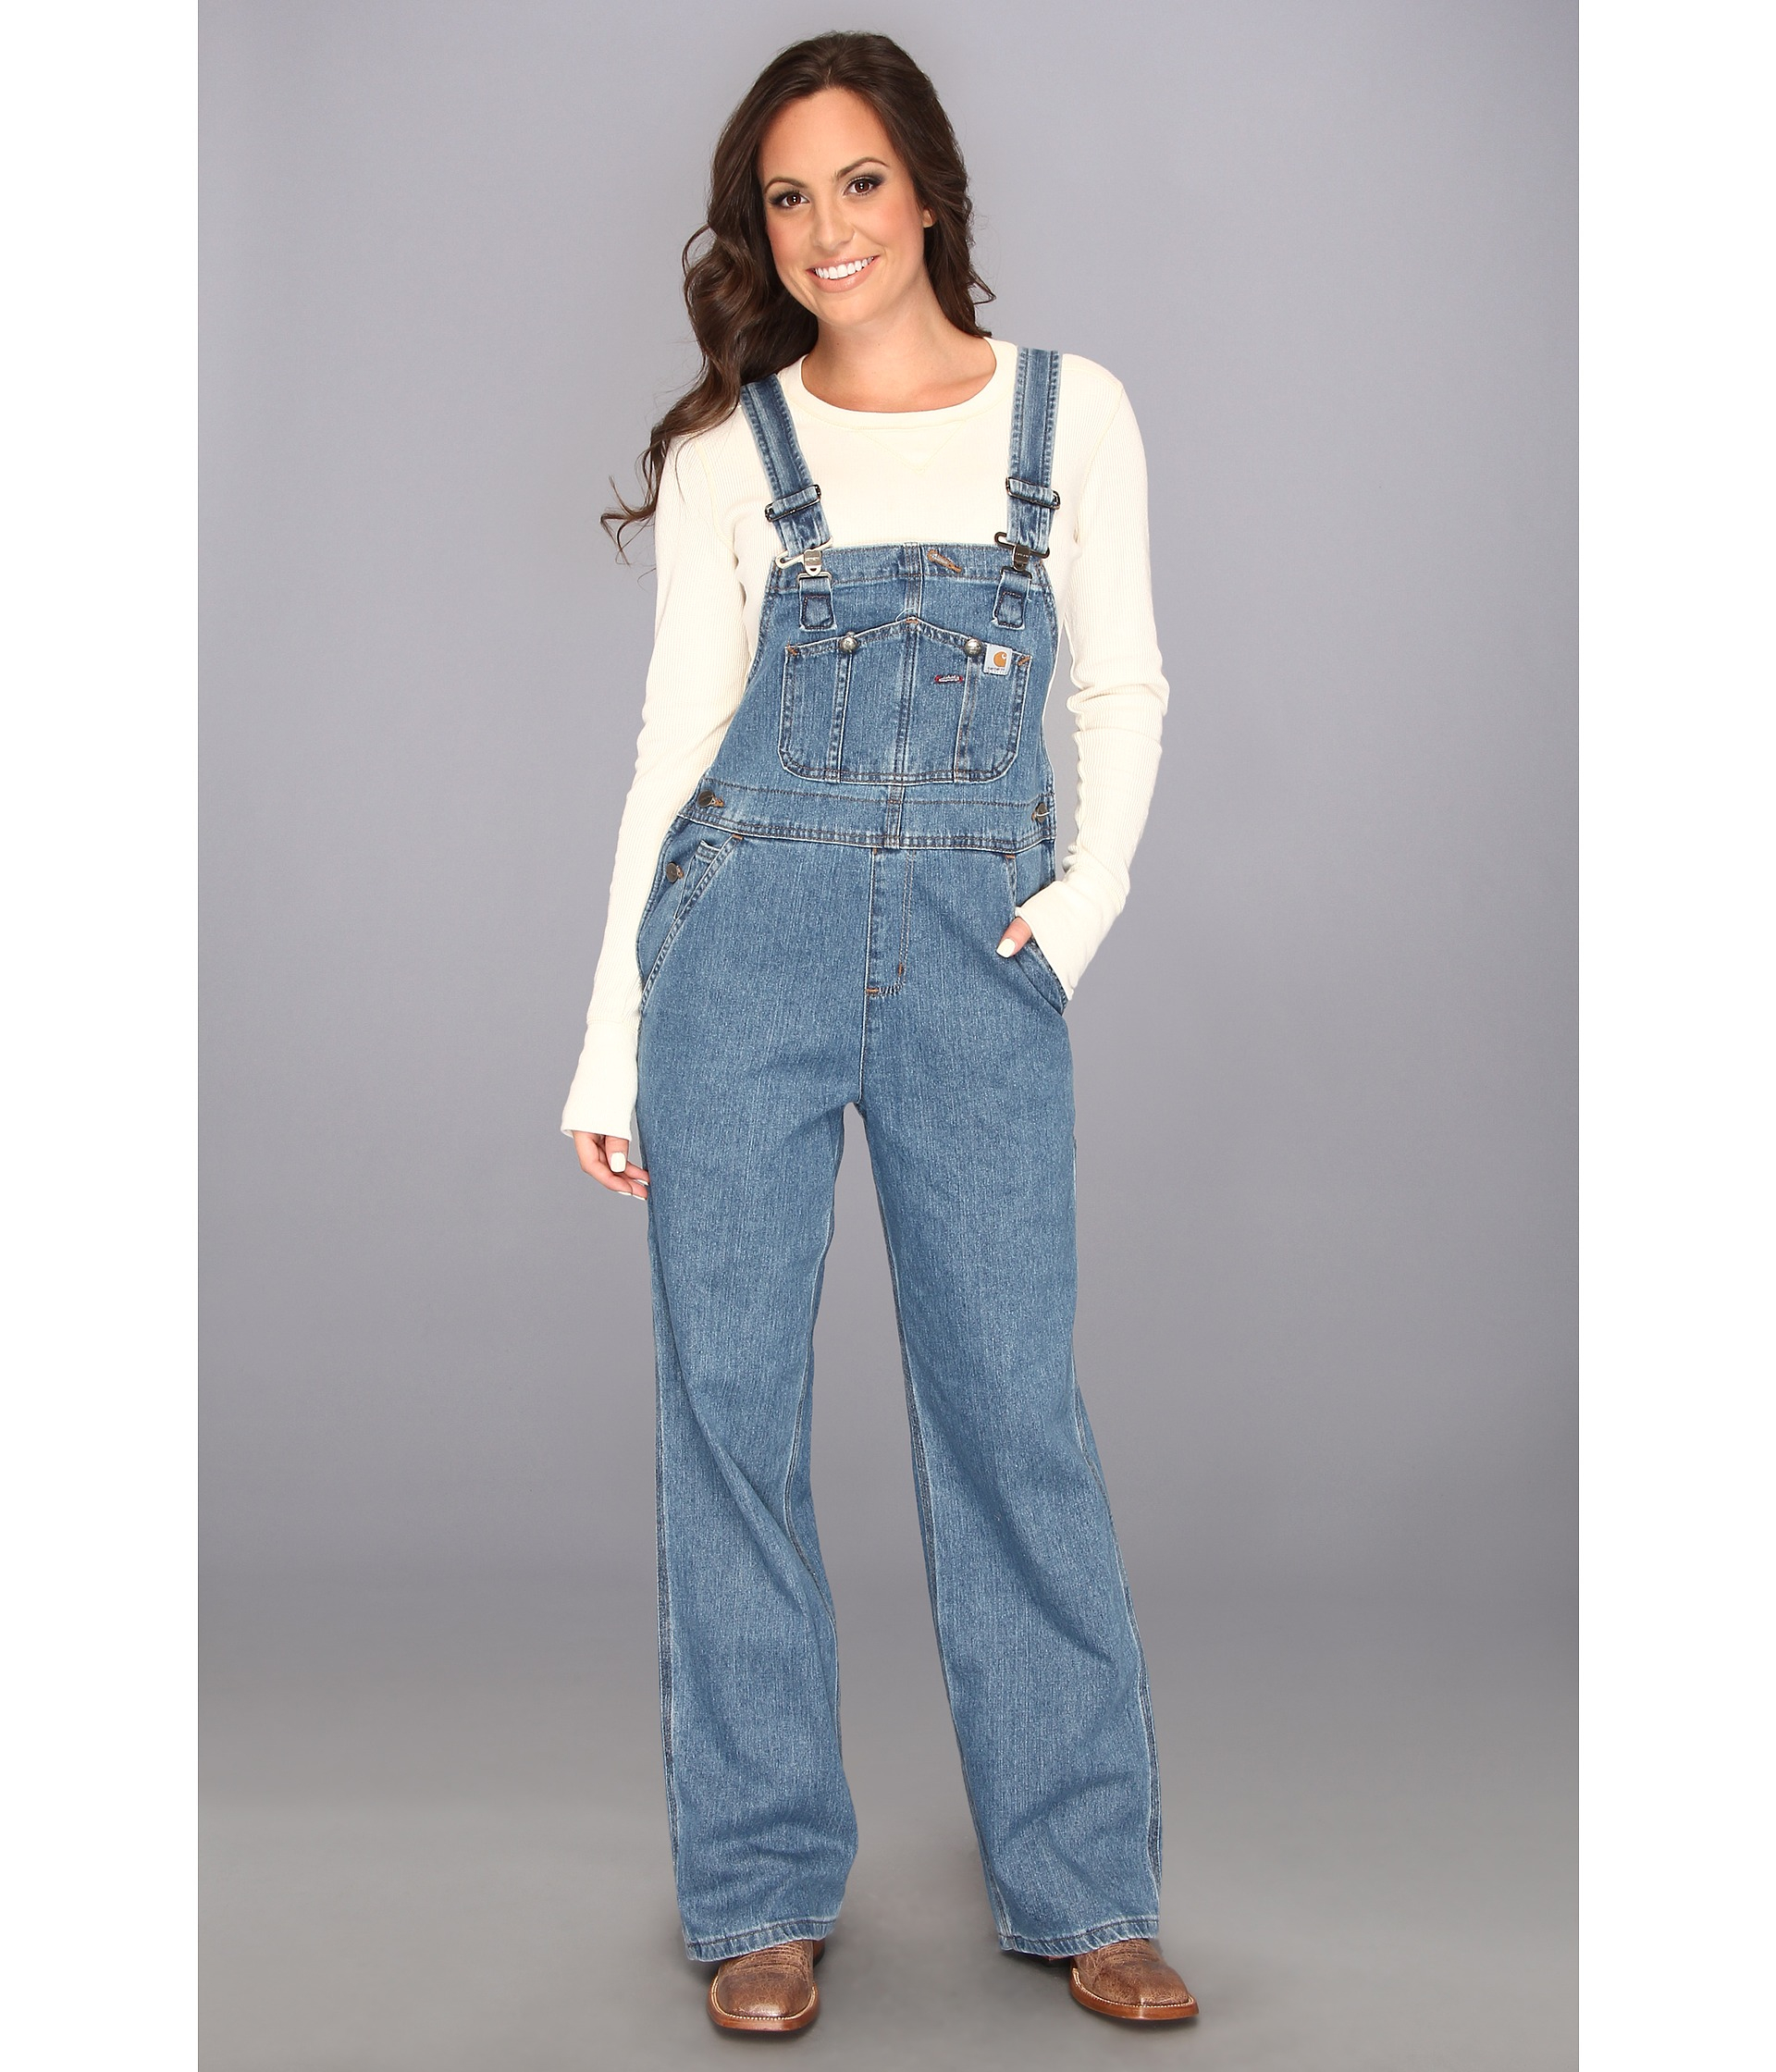 Shop the Denim Bib Overall - Unlined for Men's at distrib-wjmx2fn9.ga for Men's Overalls & Coveralls that works as hard as you do/5(75).